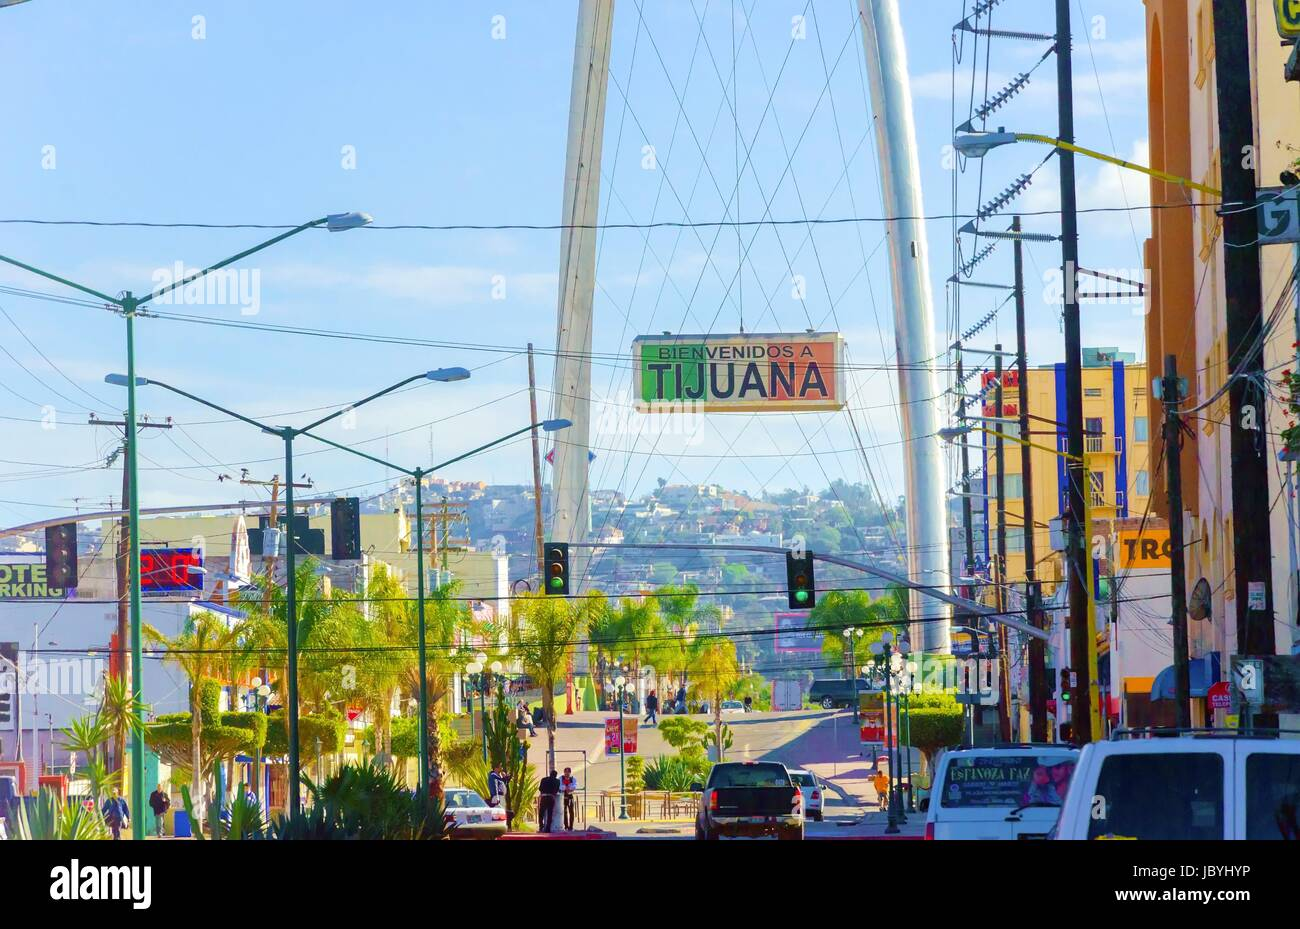 The Millennial Arch (Arco y Reloj Monumental), a metallic steel arch at the entrance of the city of Tijuana in Mexico, - Stock Image